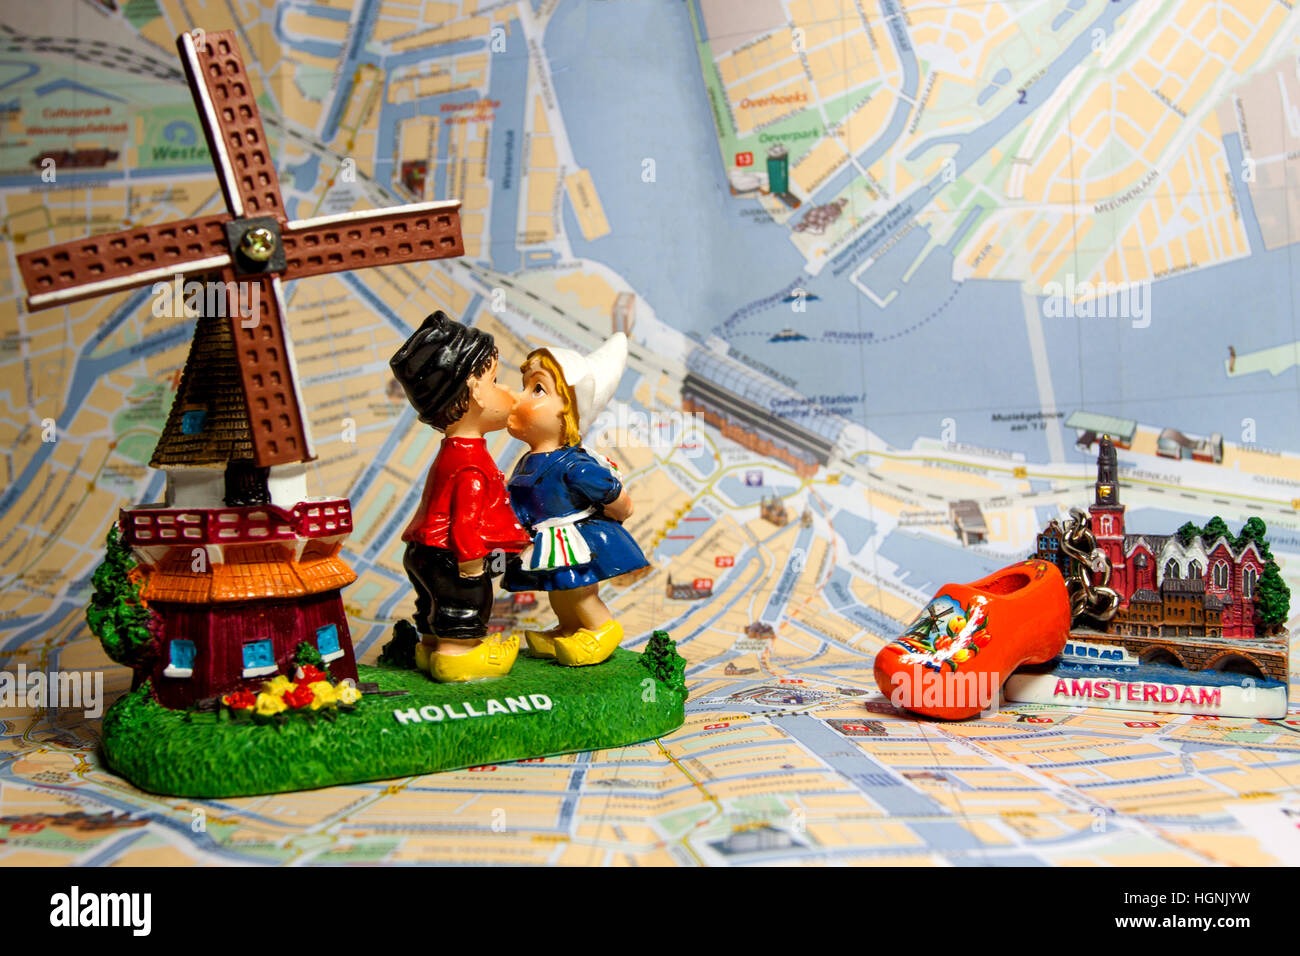 Holland Souvenir With Amsterdam Maps In Background Dutch Windmill Stock Photo Royalty Free